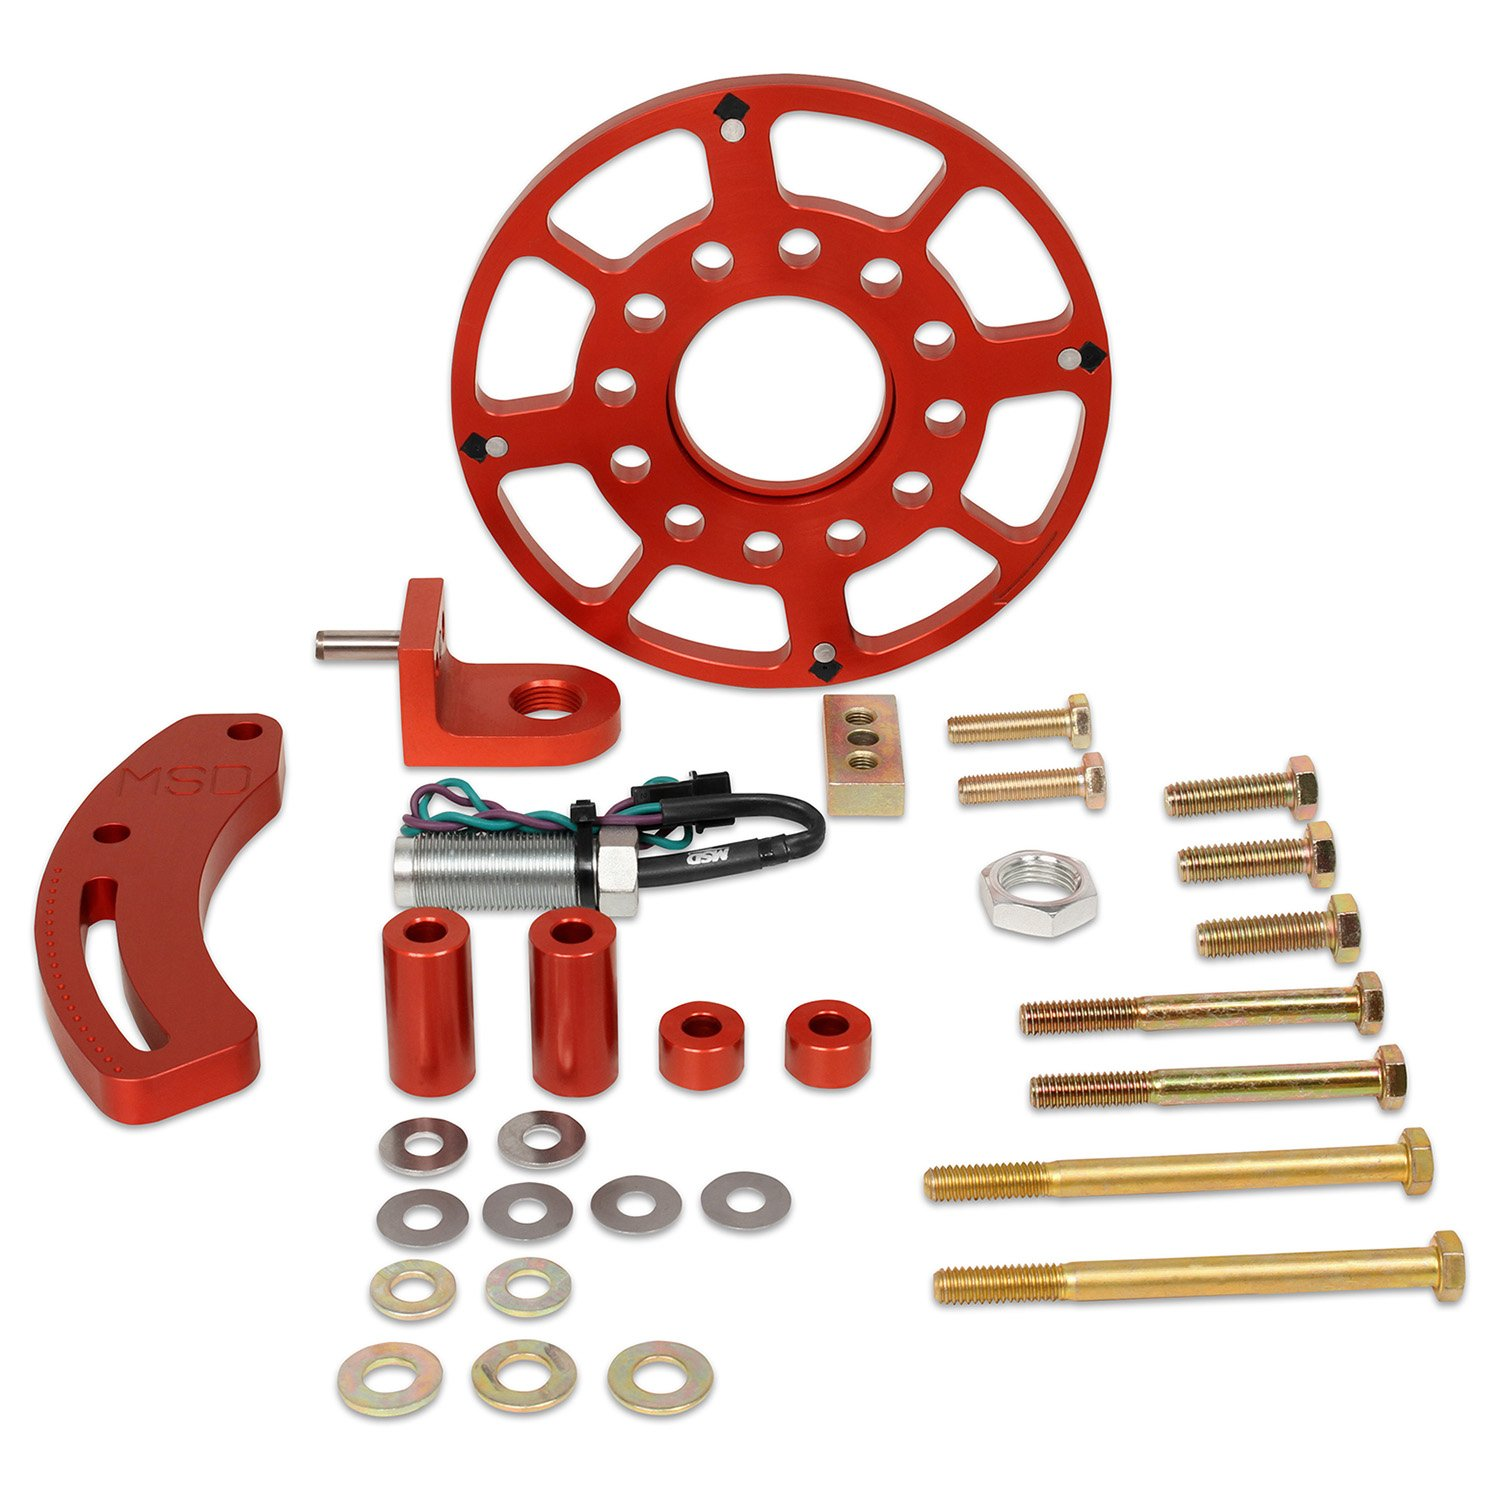 8640 - Ford Small Block Crank Trigger Kit Image